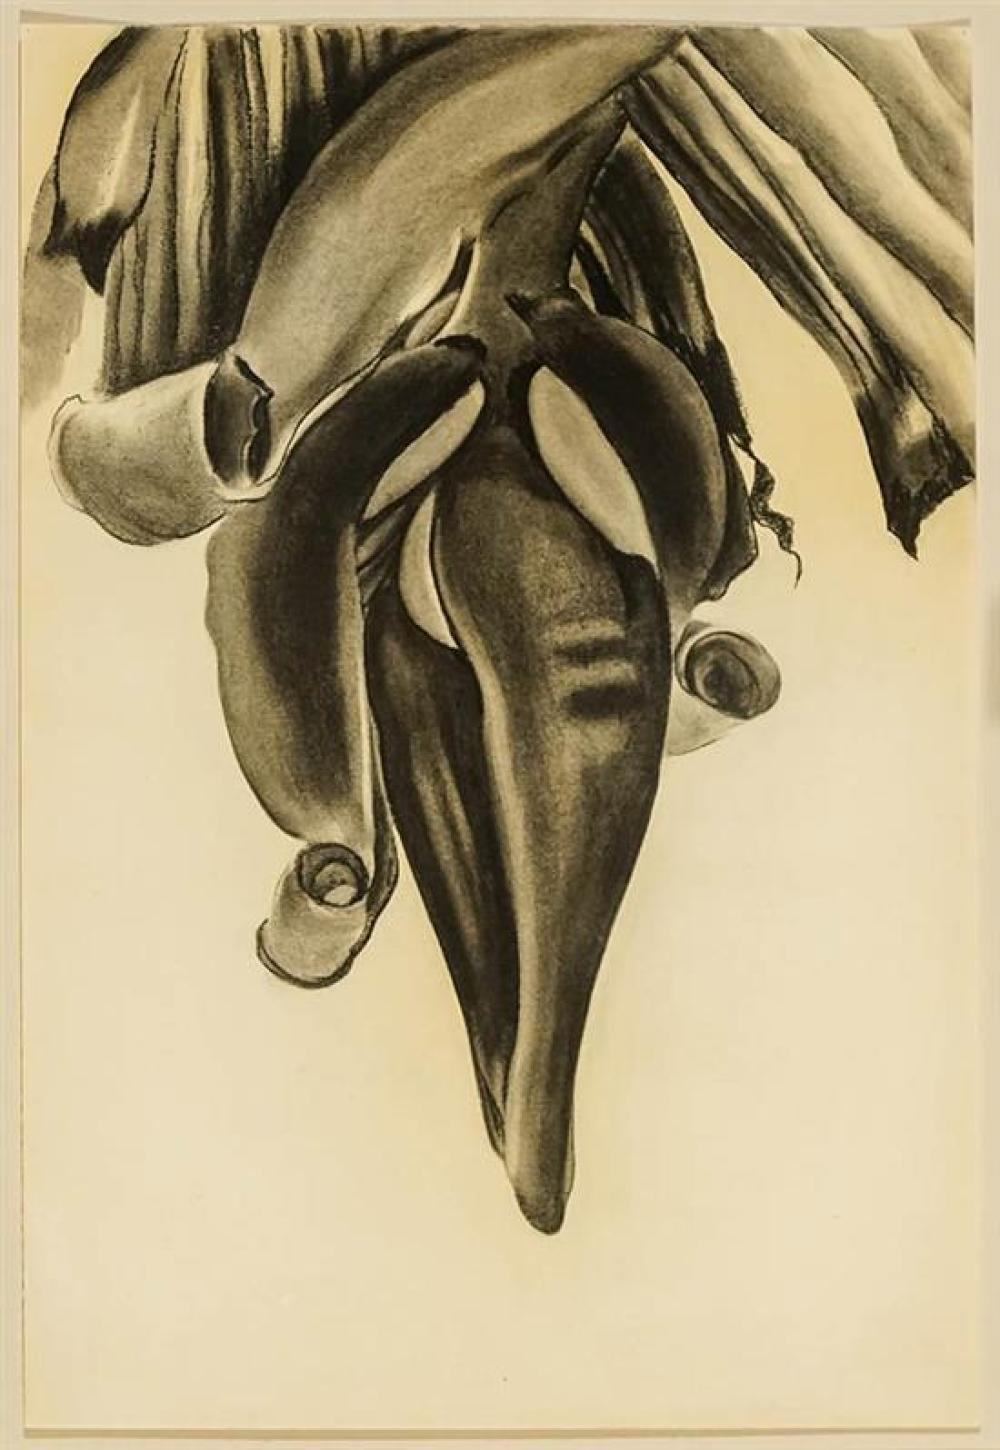 Georgia O'Keeffe (American 1887-1986), Untitled (Banana Flower) (Buhler Lynes 834), Framed Charcoal on Paper, 21-3/4 x 14-3/4 inches